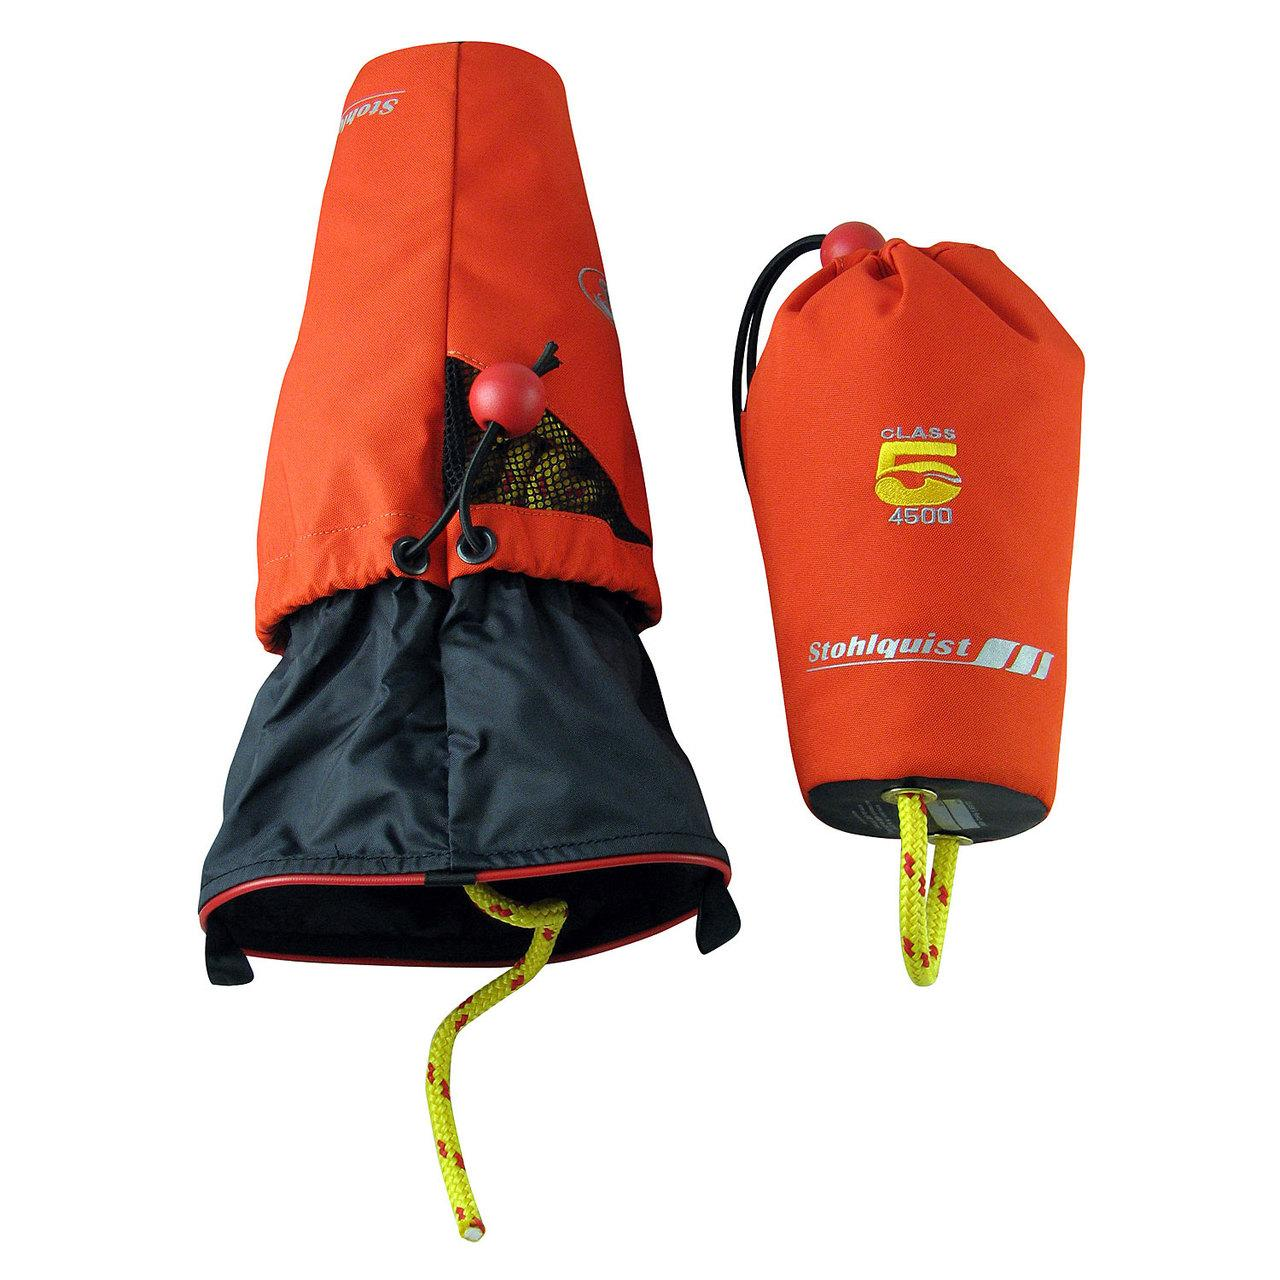 Stohlquist Class 5 Rescue Bag